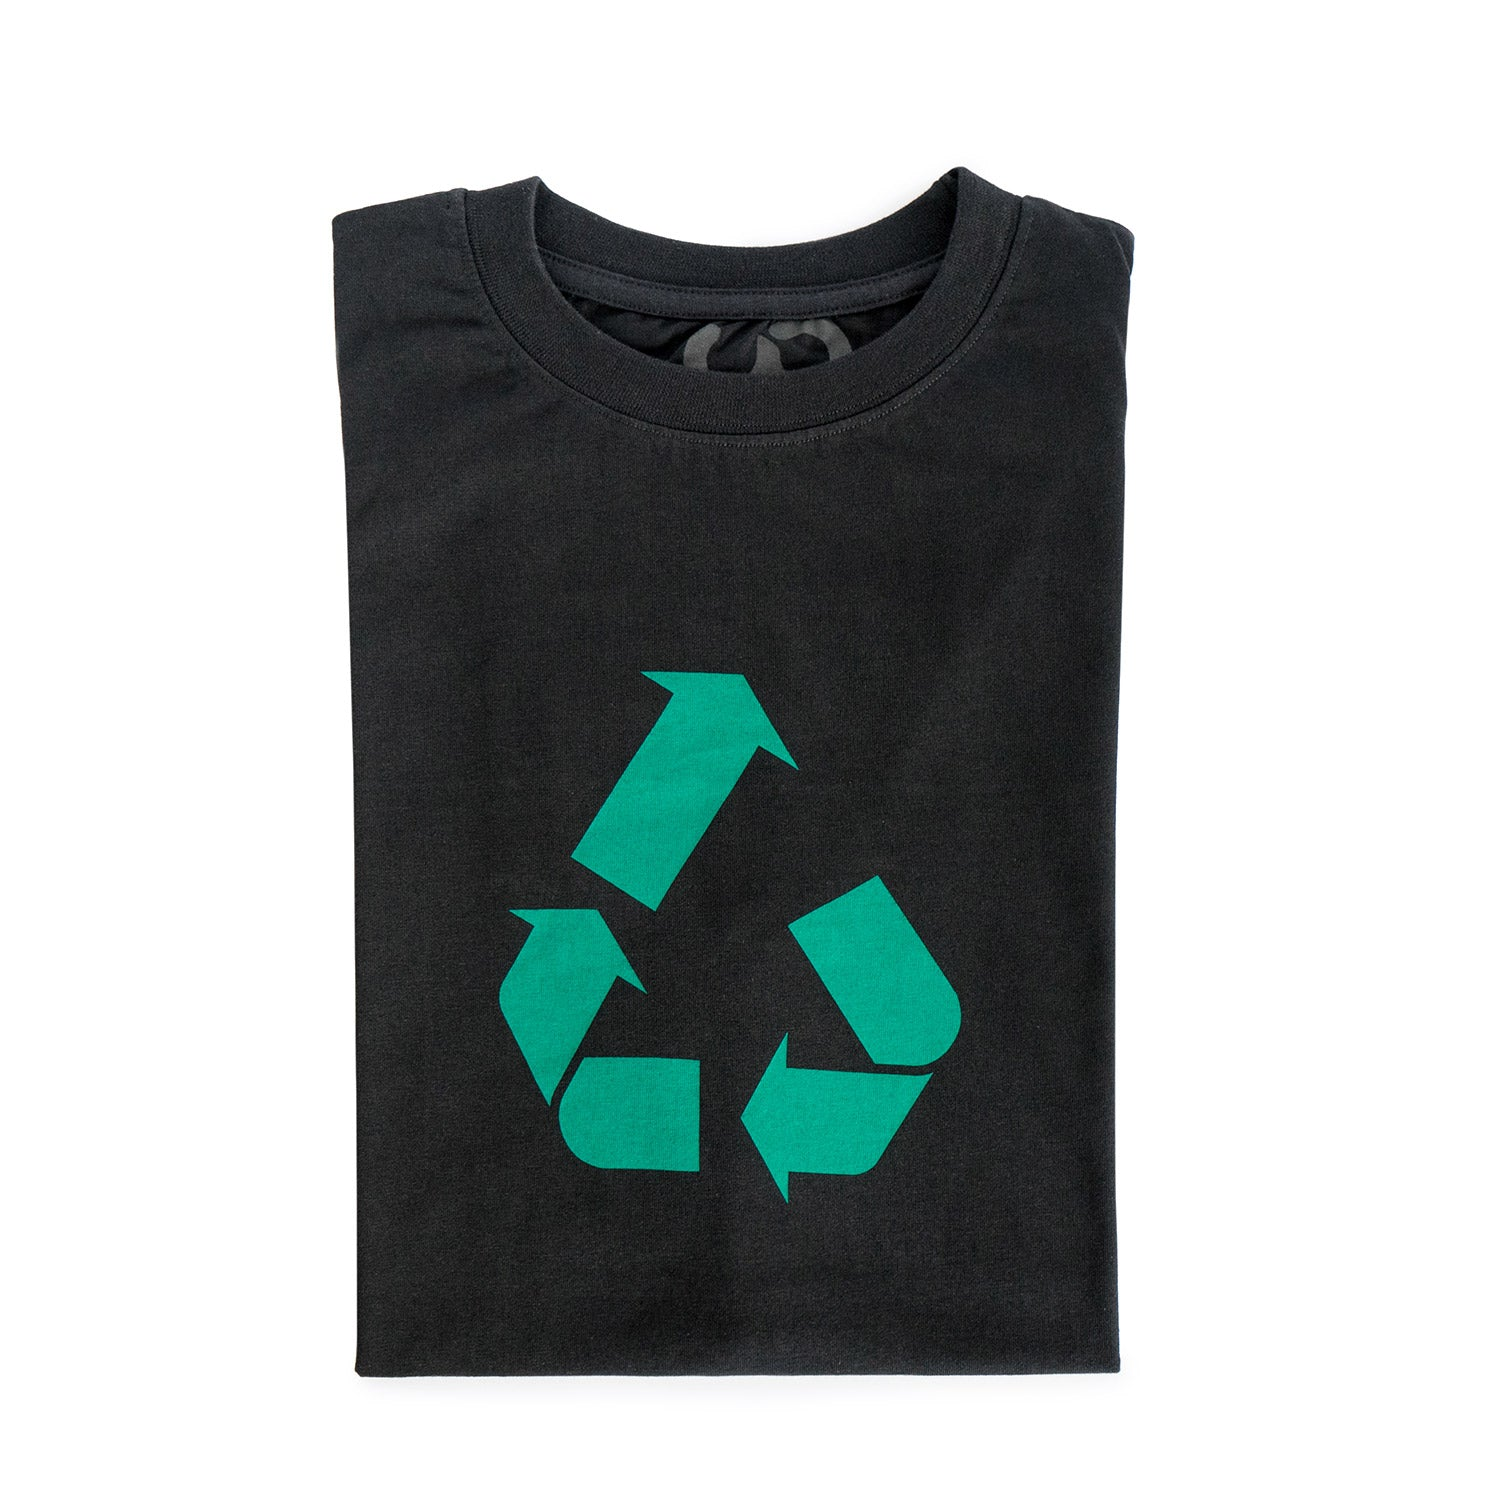 675da70d2 Looptworks upcycled upcycle logo t-shirt